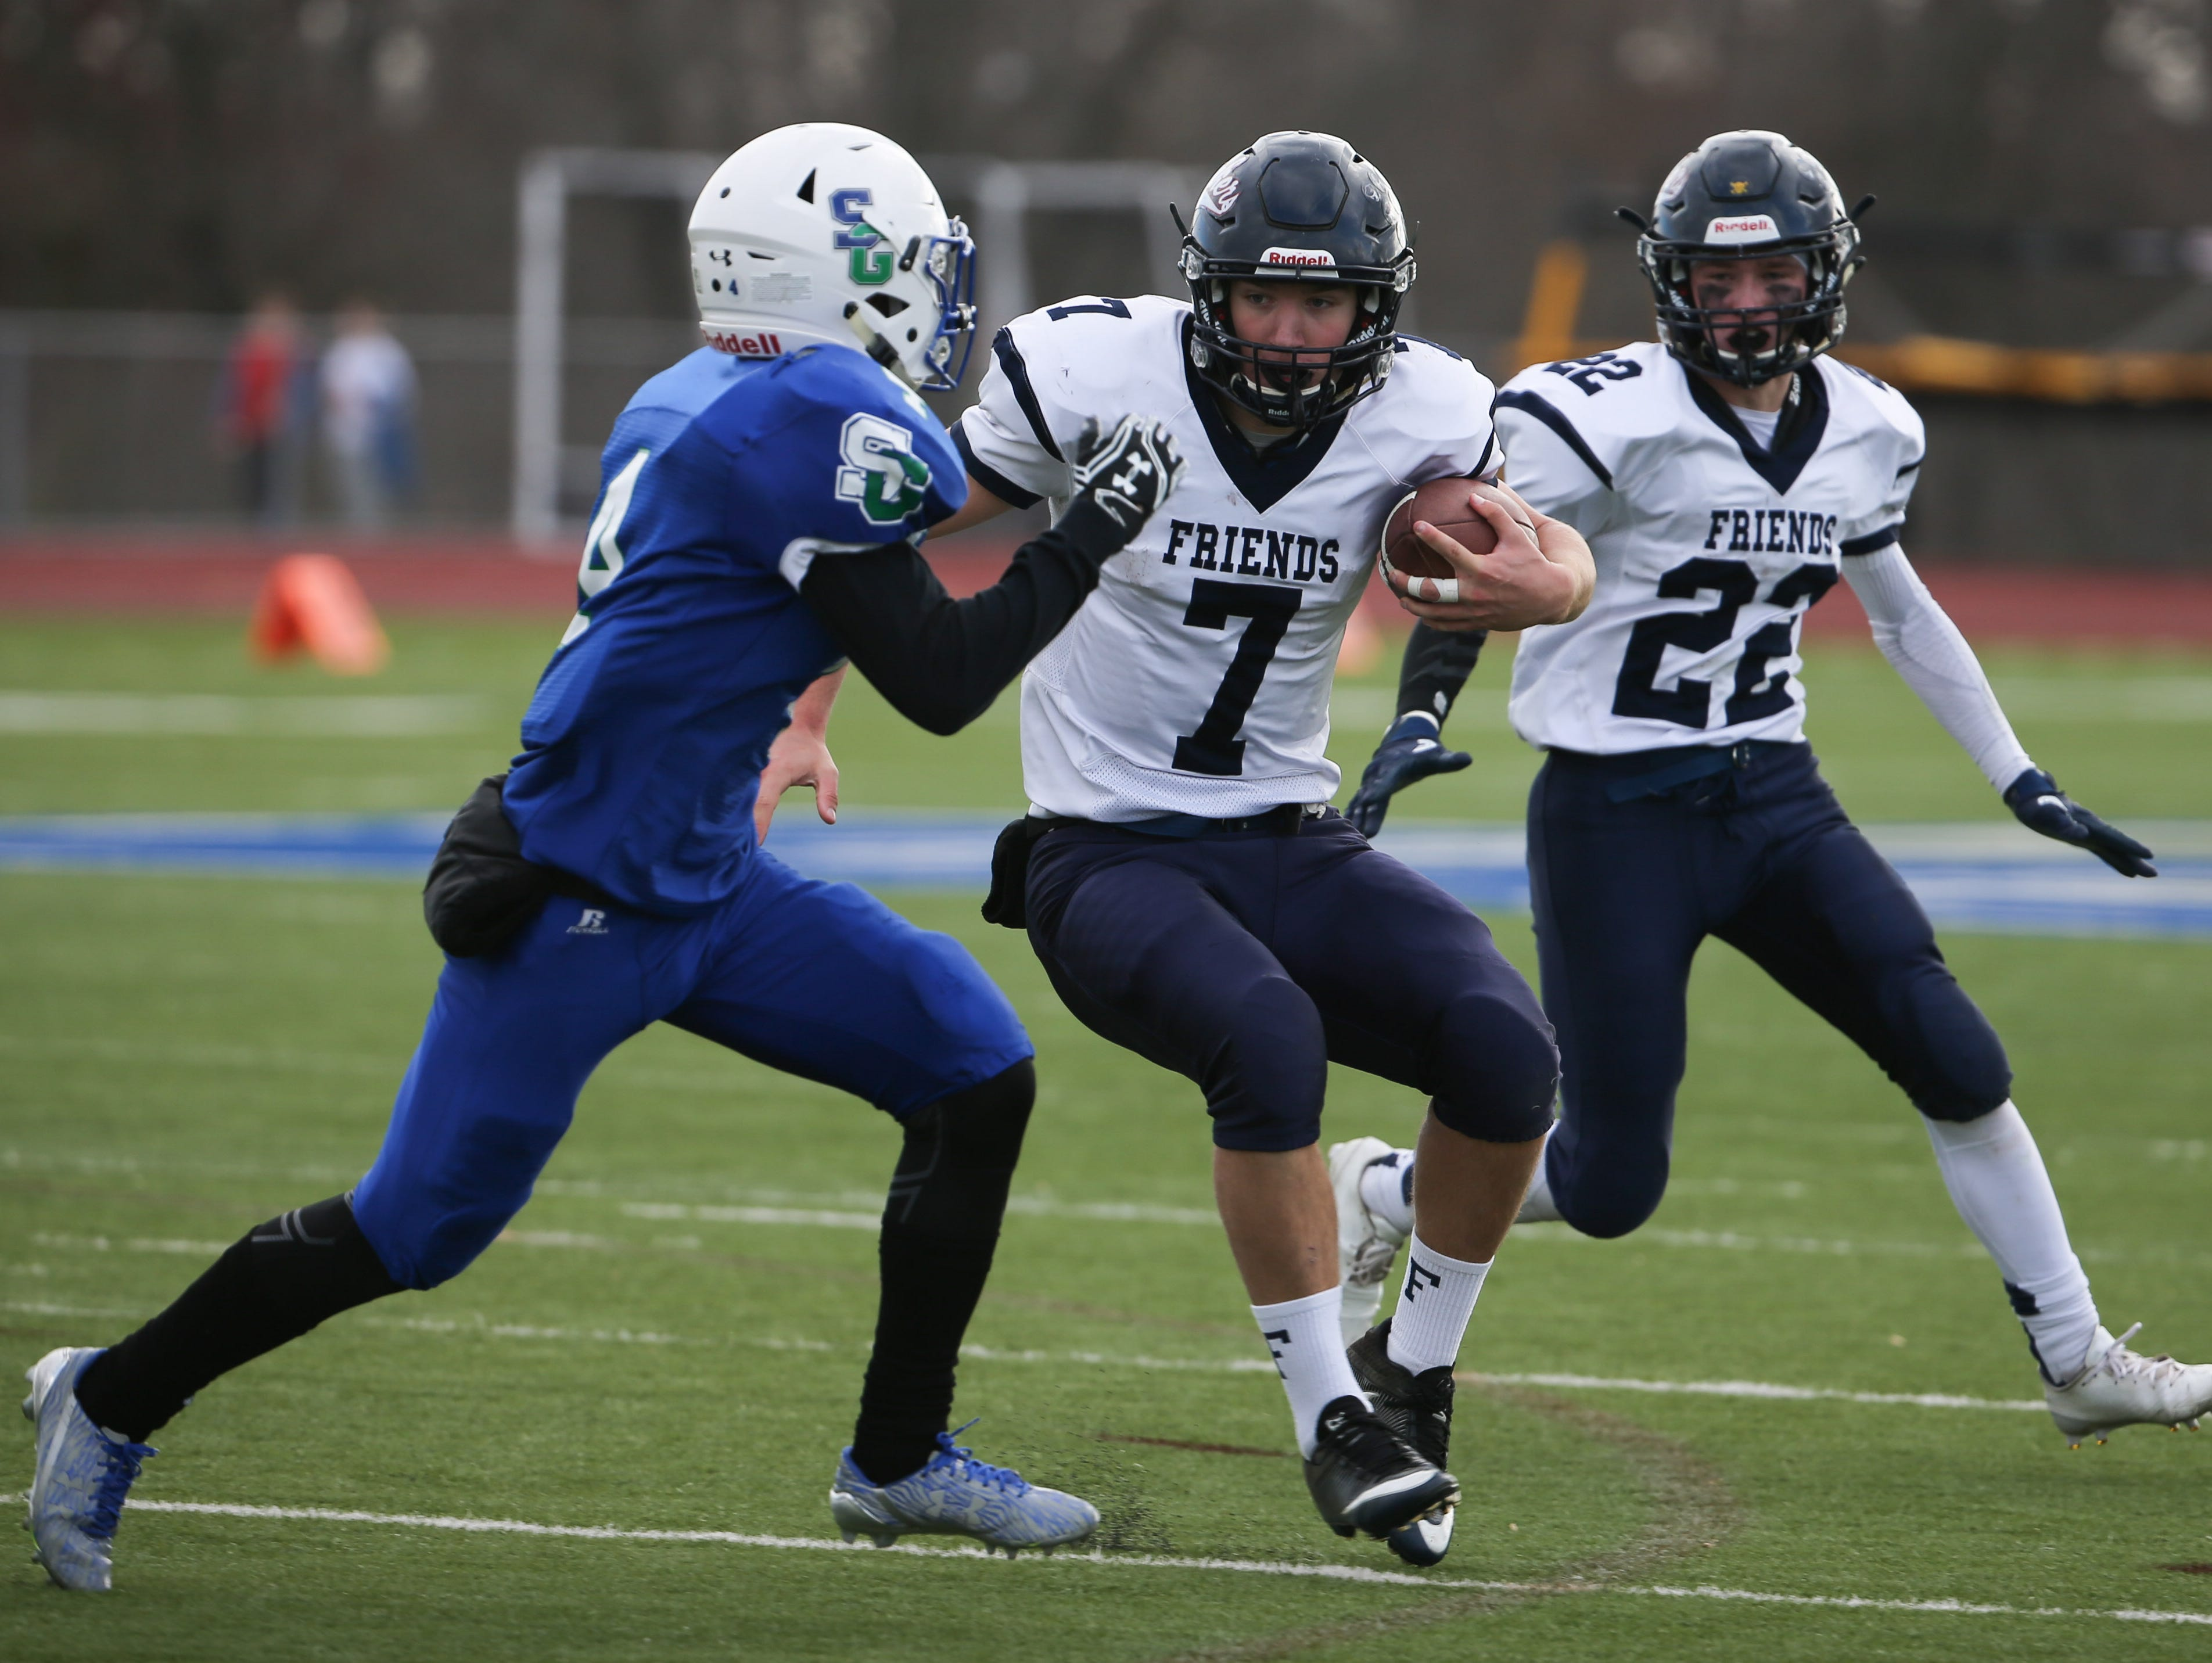 Friends quarterback Justin Beneck runs the ball in the fourth quarter. Wilmington Friends advances to the DIAA Division II state finals with a 20-6 win over St. Georges Saturday.